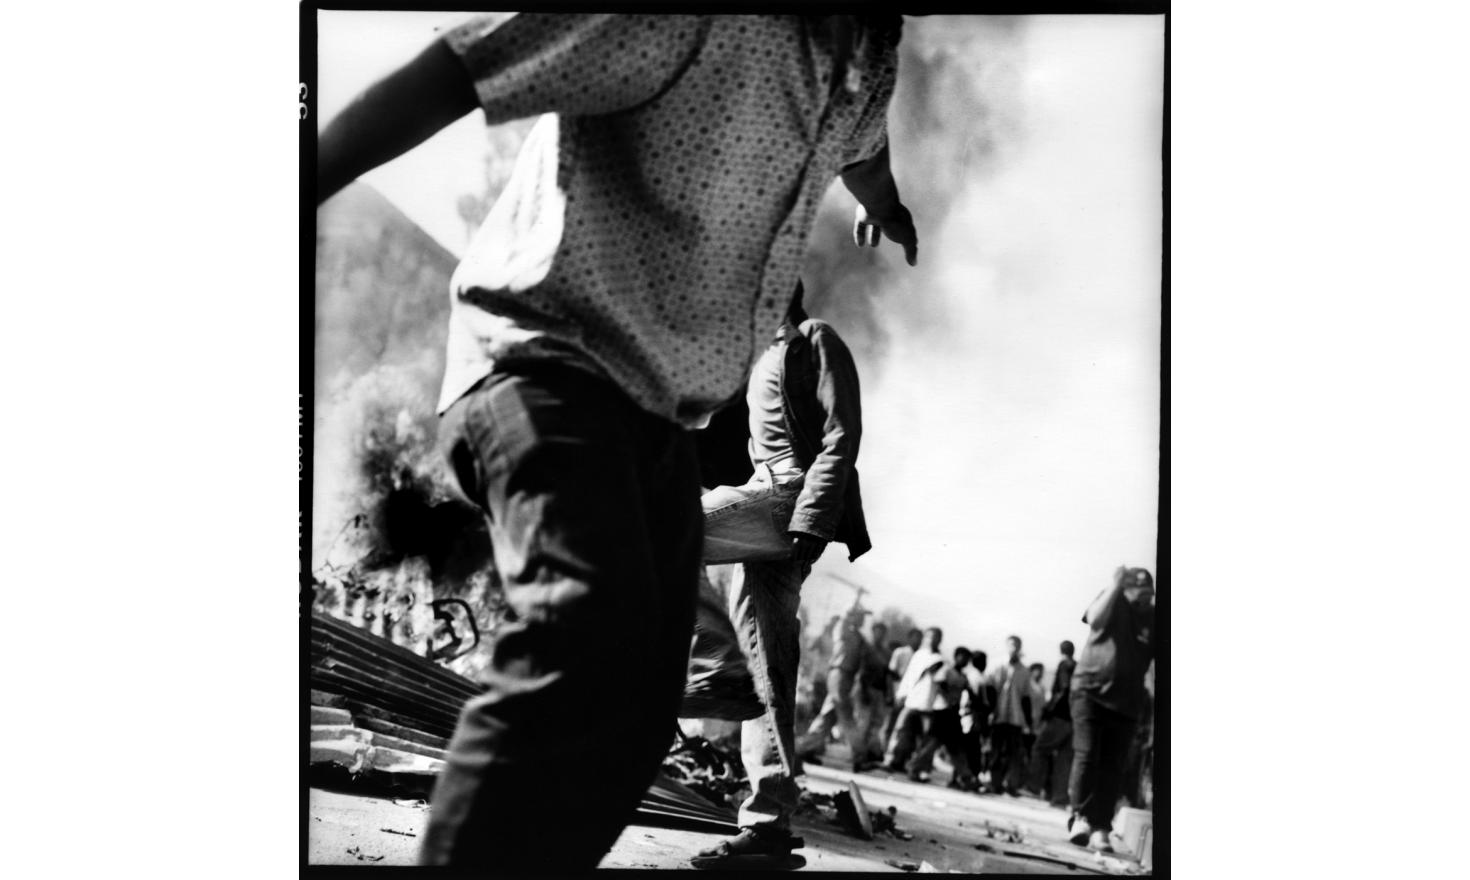 Anti Absolute monarchy protestors are burning tires, which becomes the ordinary environnement on the Ring Road during the weeks of protest. Kalanki, outskirt of Kathmandu Nepal 21st of April 2006